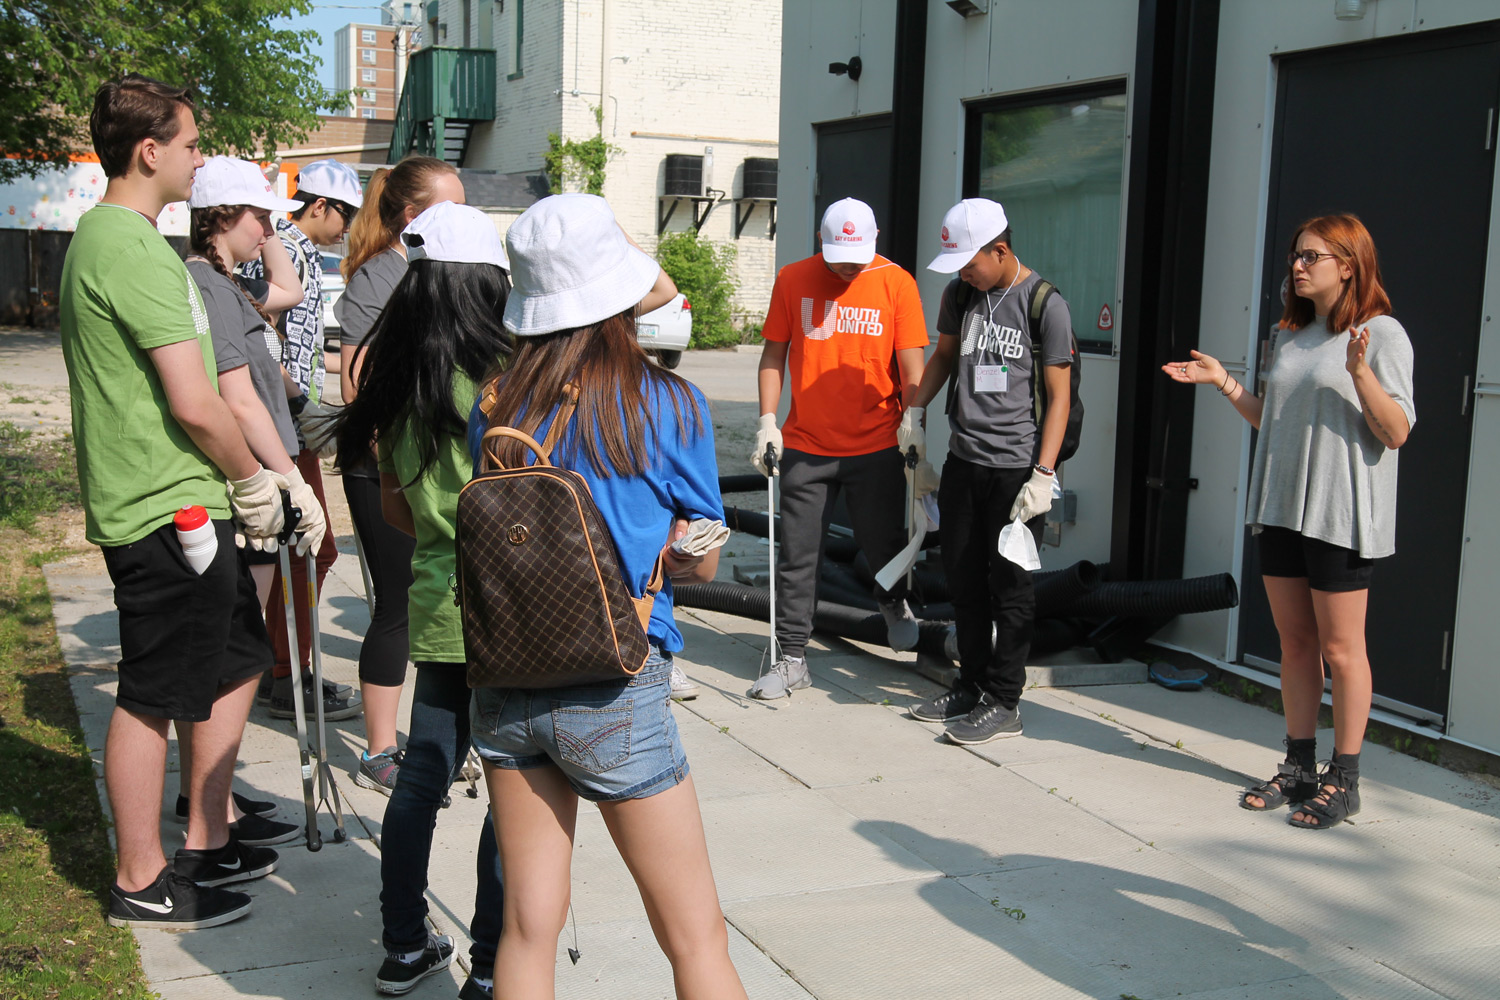 North End Women's Centre's Marissa Rykiss talks to youth before they start work.